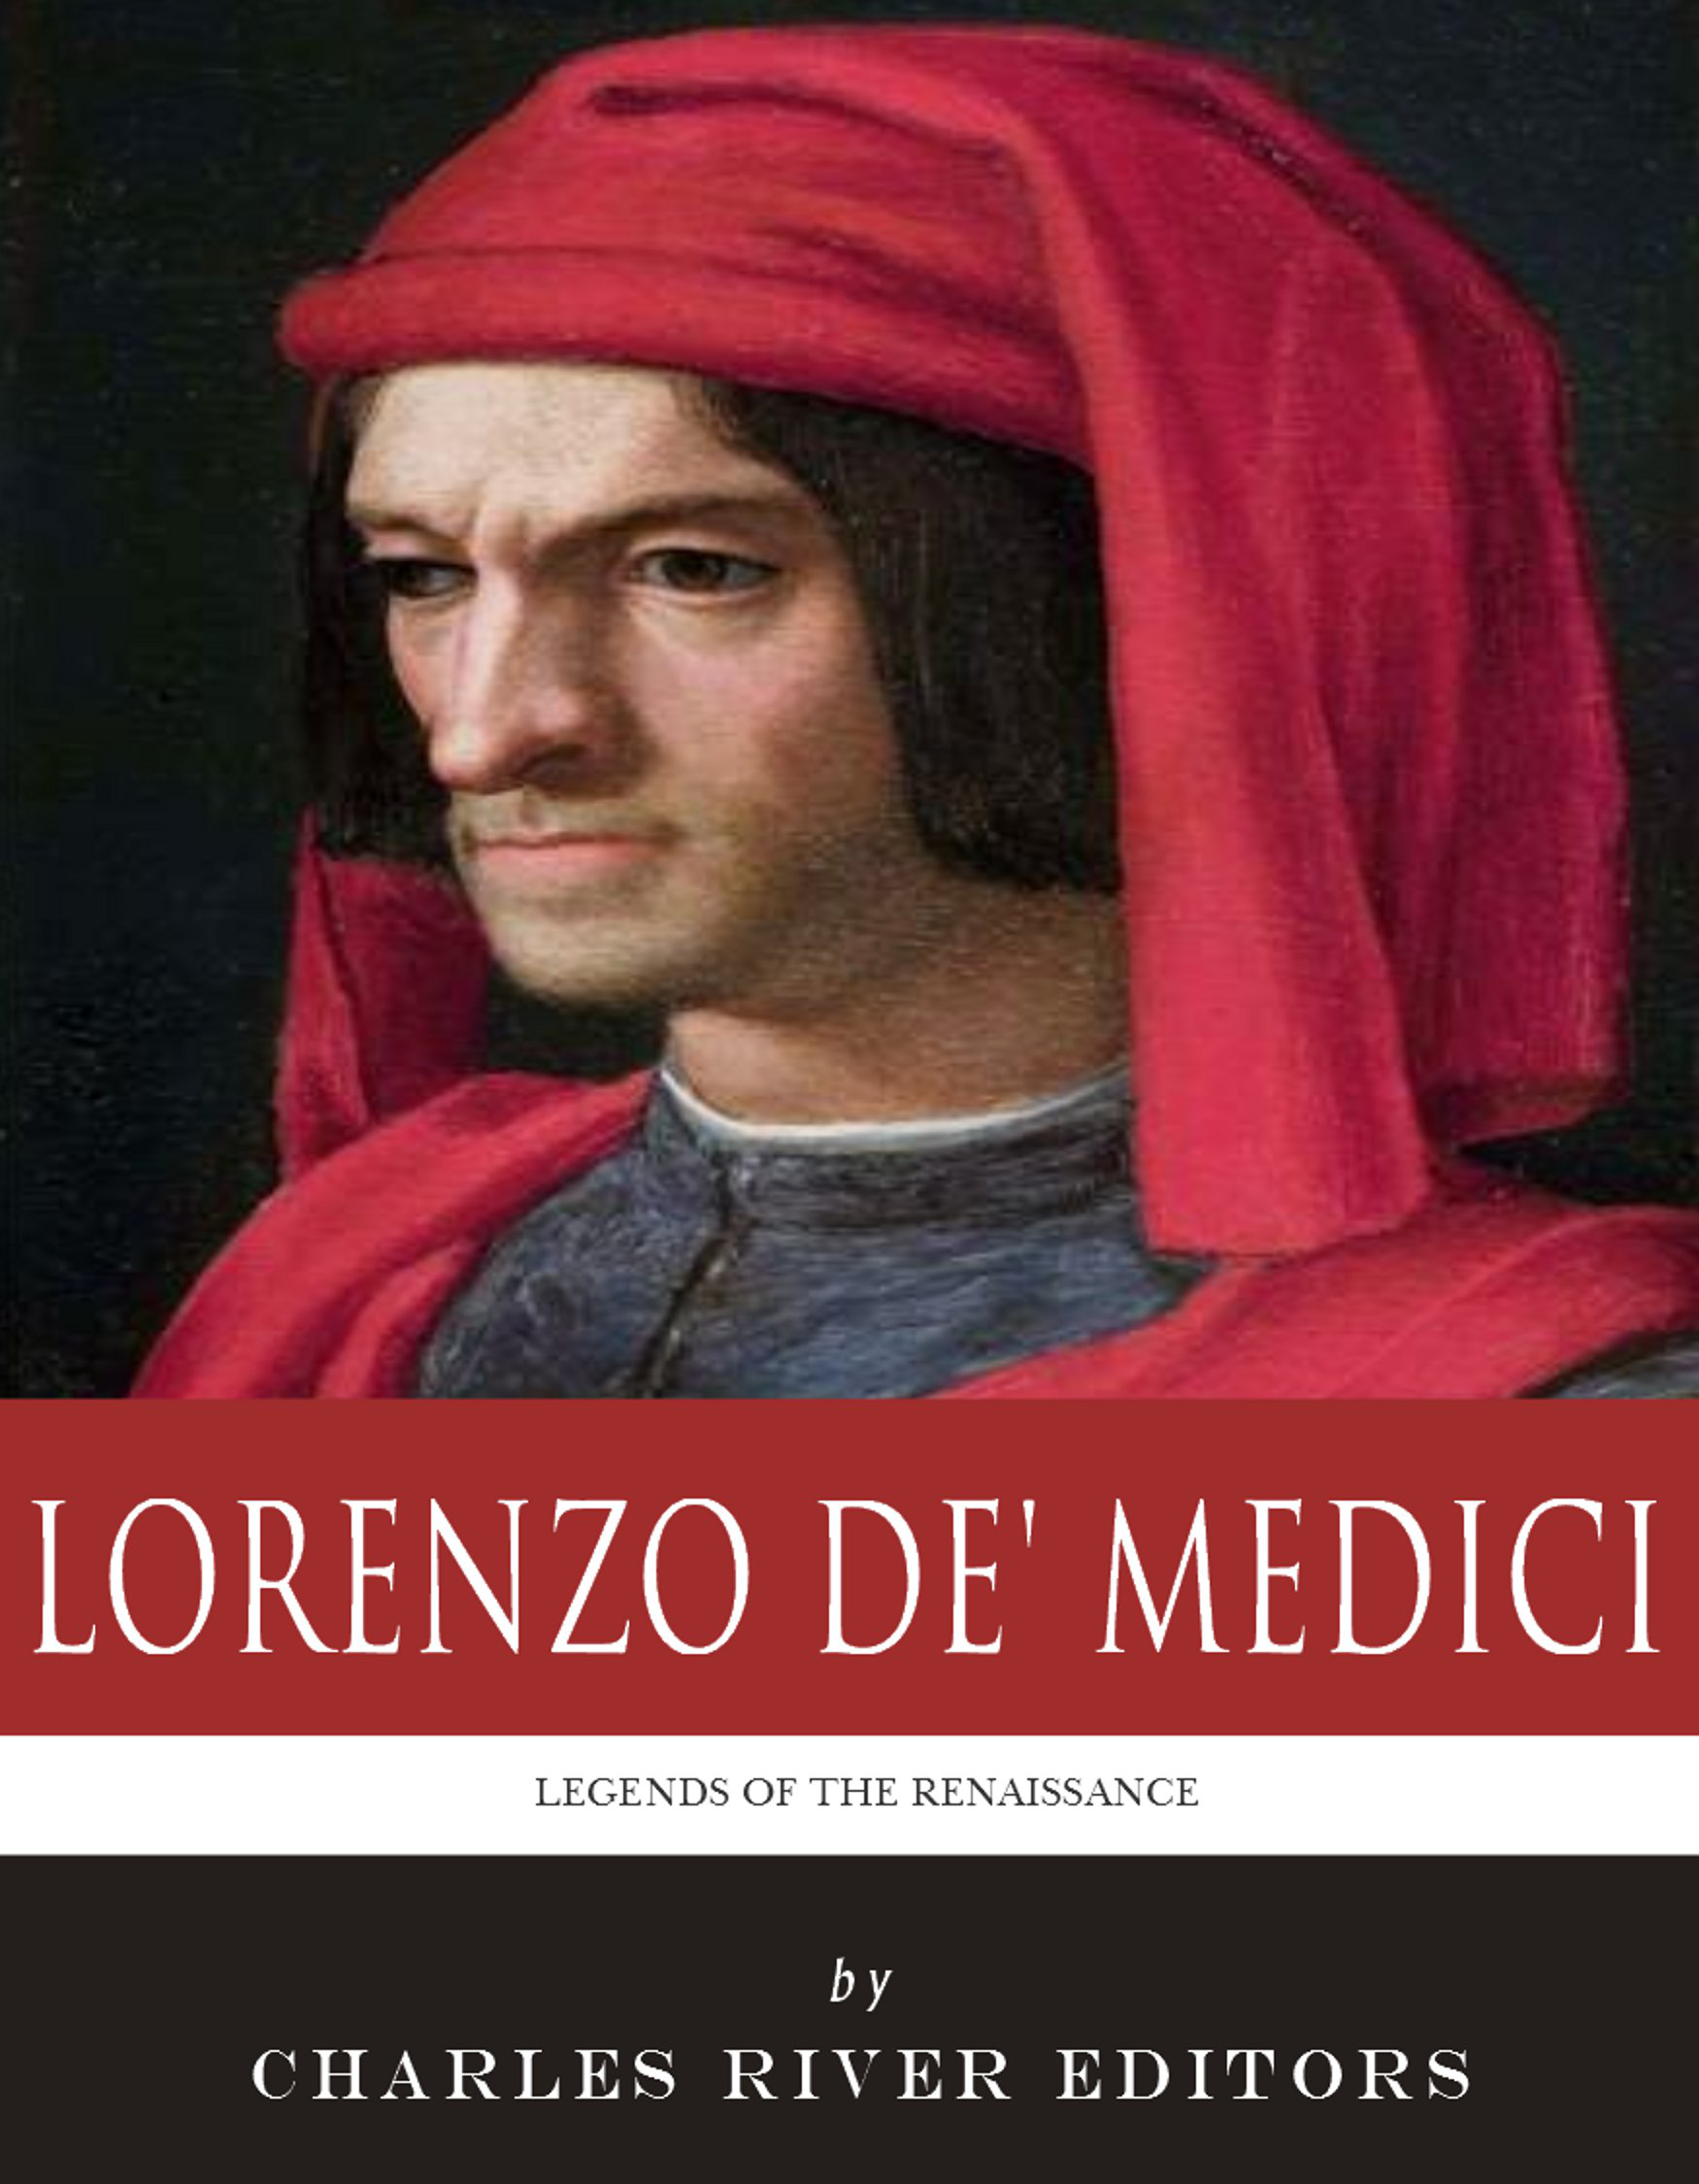 Legends of the Renaissance: The Life and Legacy of Lorenzo de' Medici By: Charles River Editors